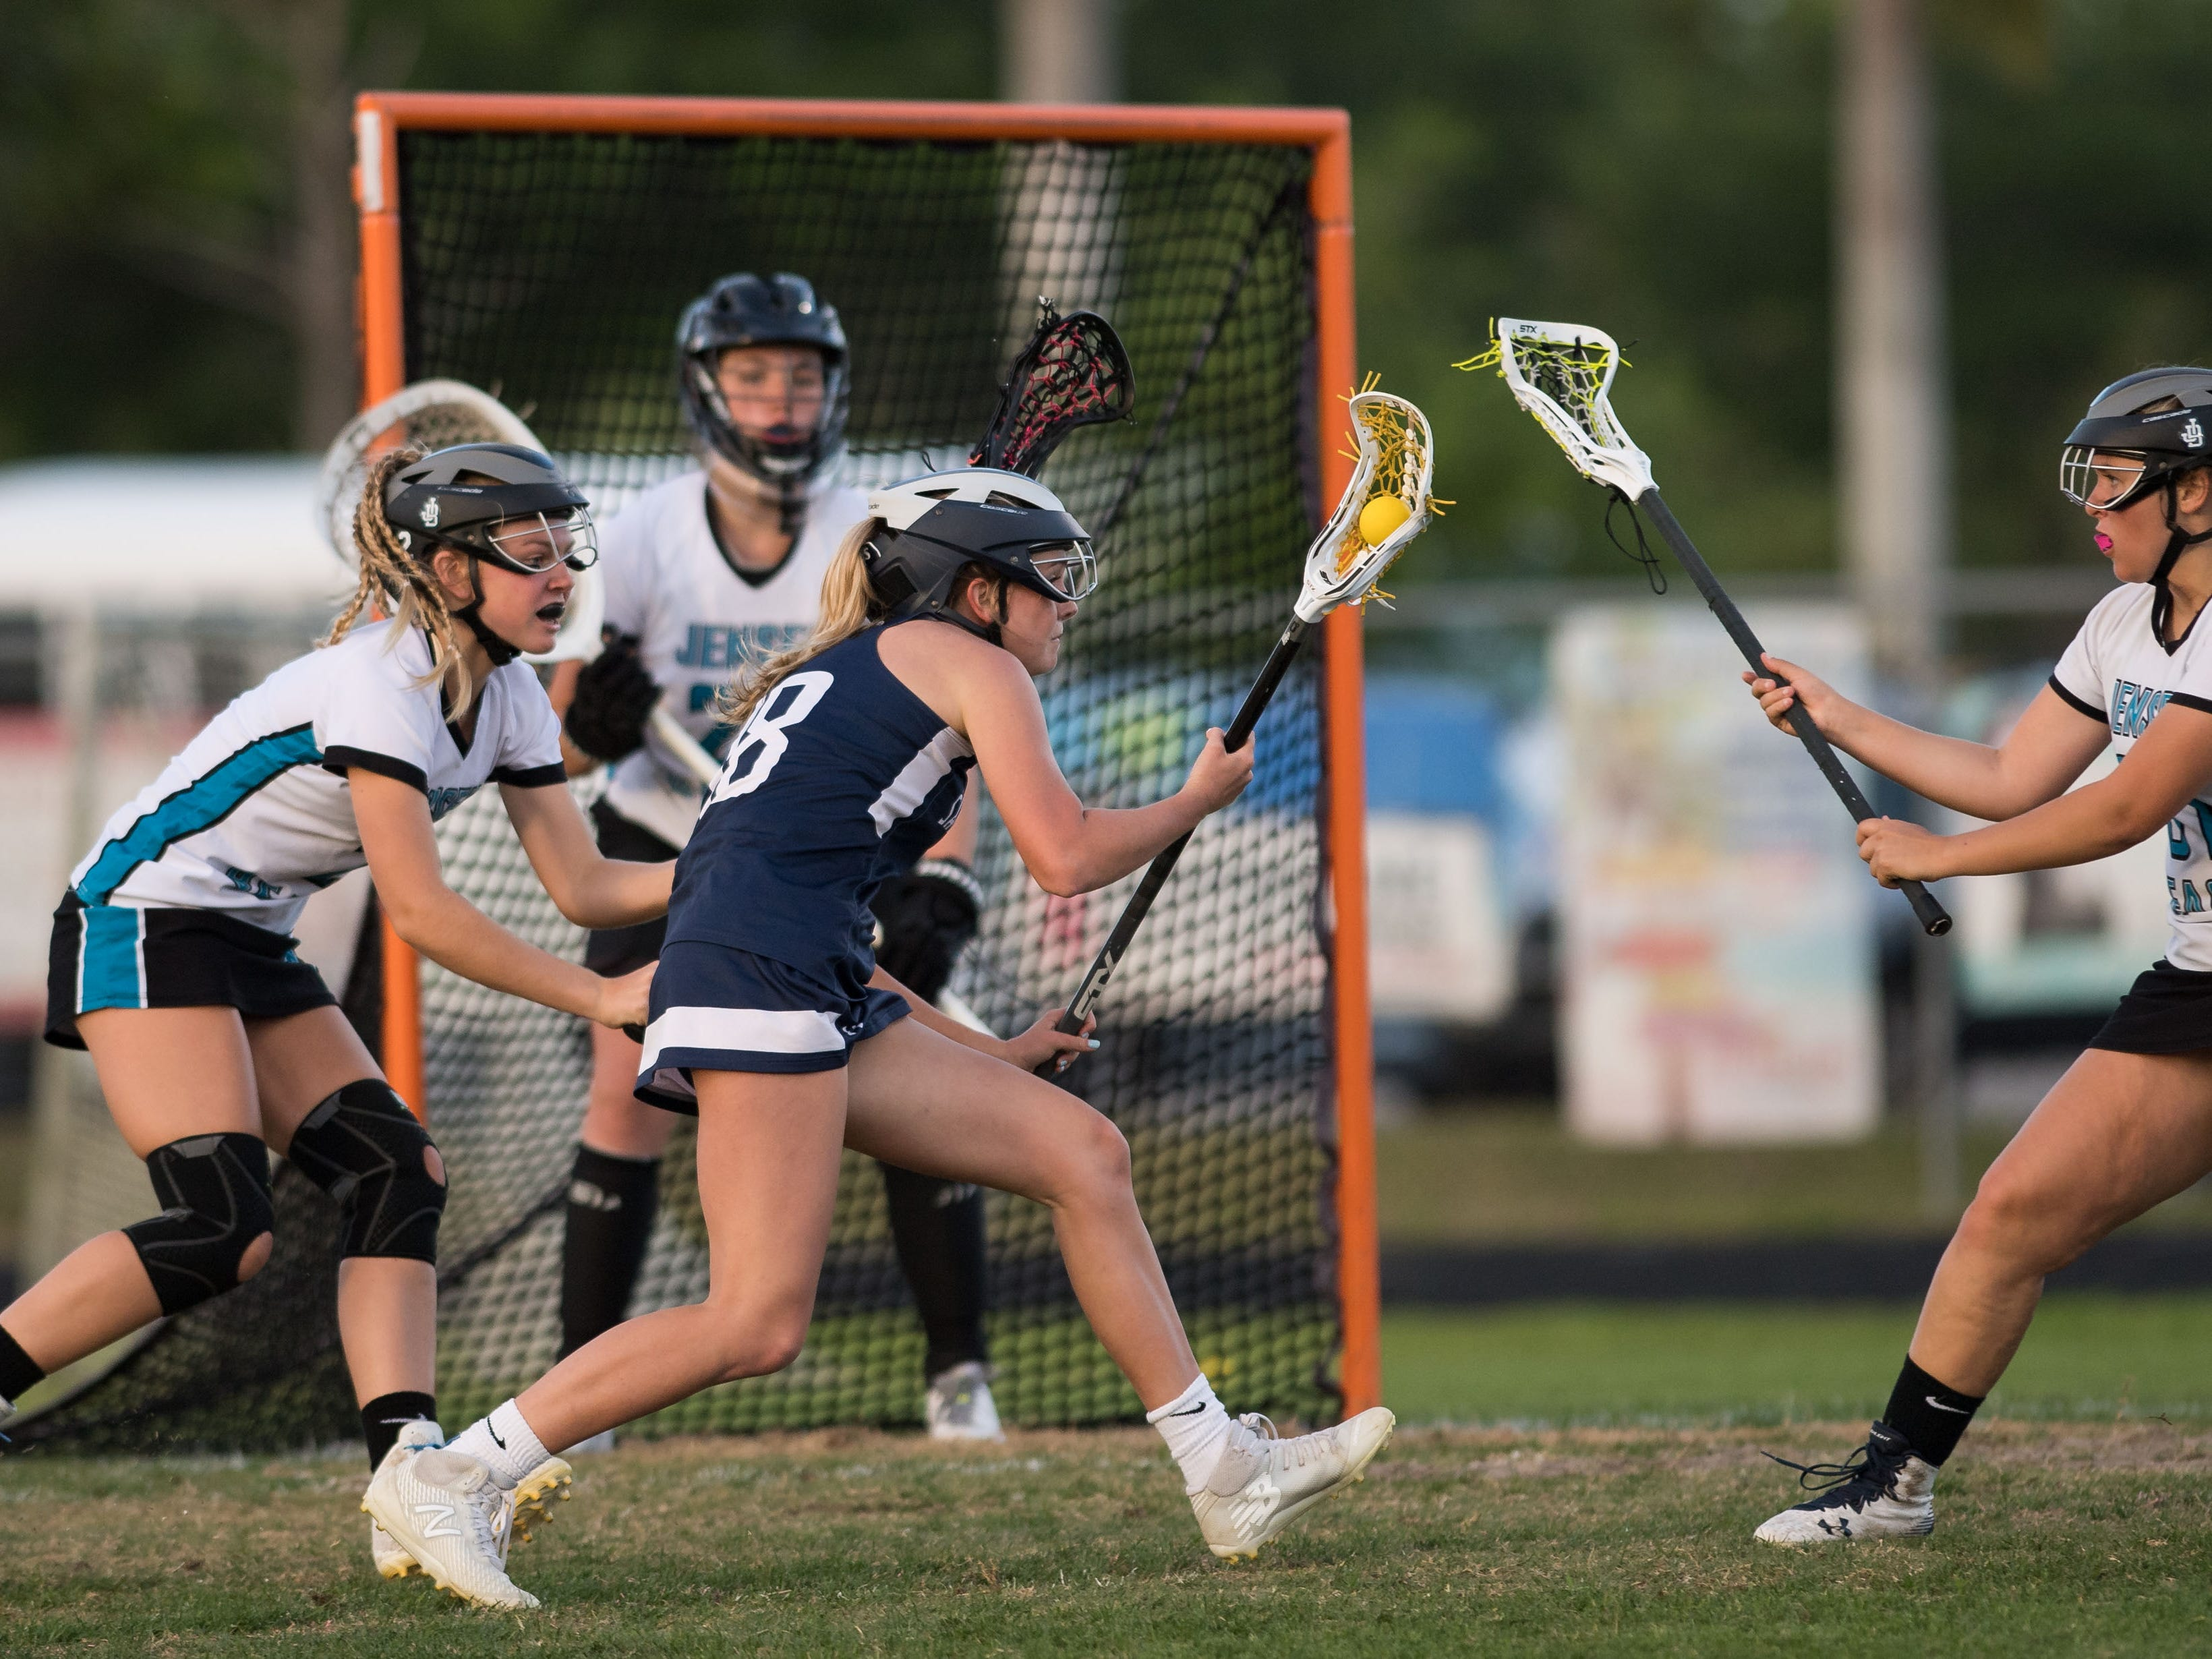 St. Edward's Bridget Nelson (center) maneuvers near the Jensen Beach goal, looking for an opening, in the second half of the high school girls lacrosse game Thursday, March 28, 2019, at Jensen Beach High School.